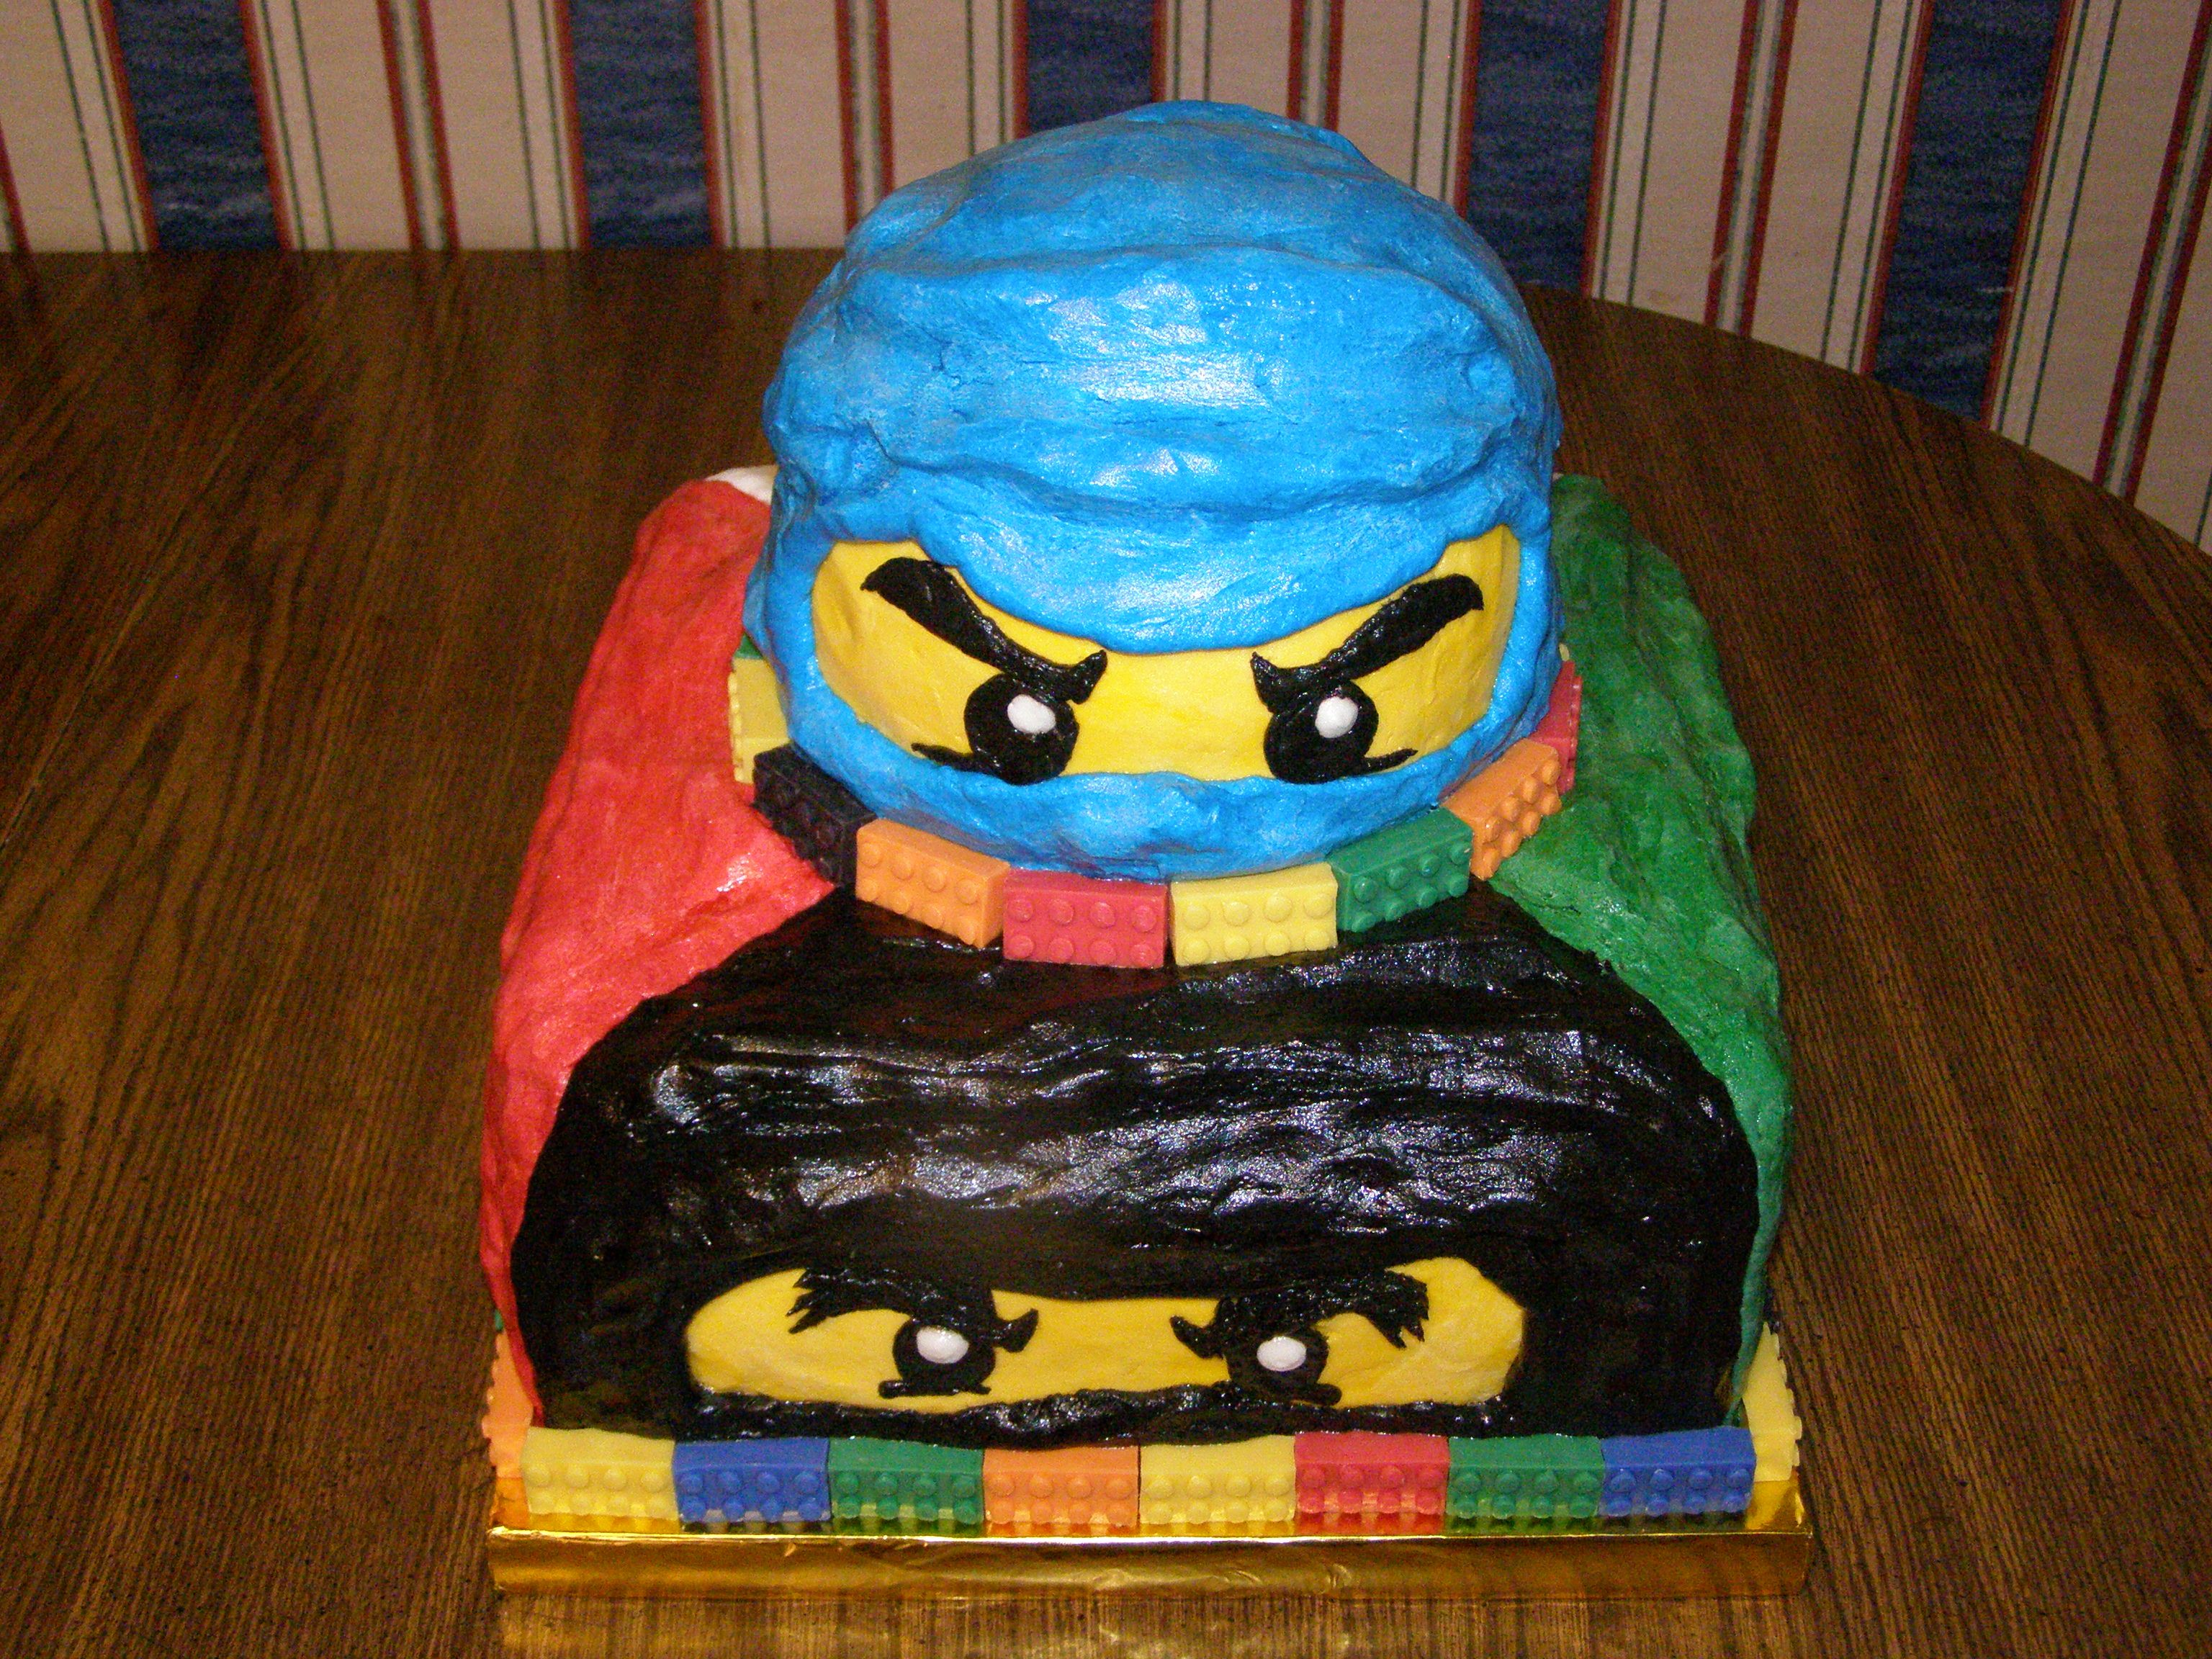 LEGO Ninjago Cake: All buttercream except for molded chocolate bricks for the borders.